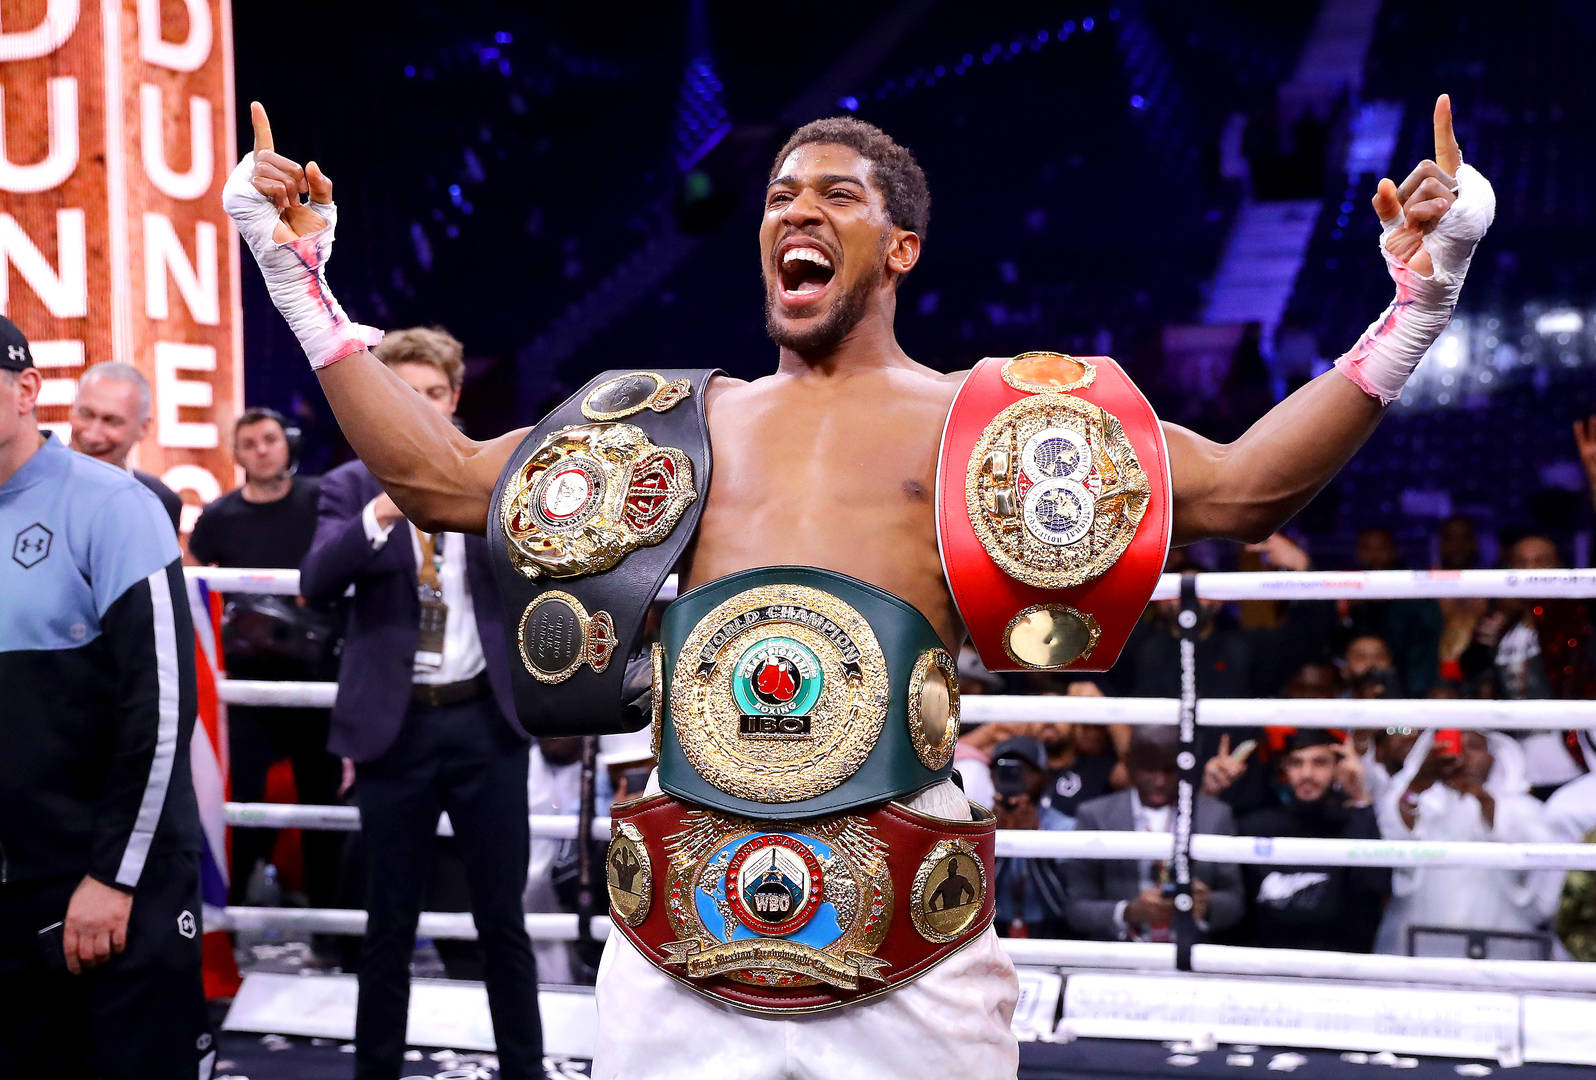 New records set by Joshua after defeating Ruiz